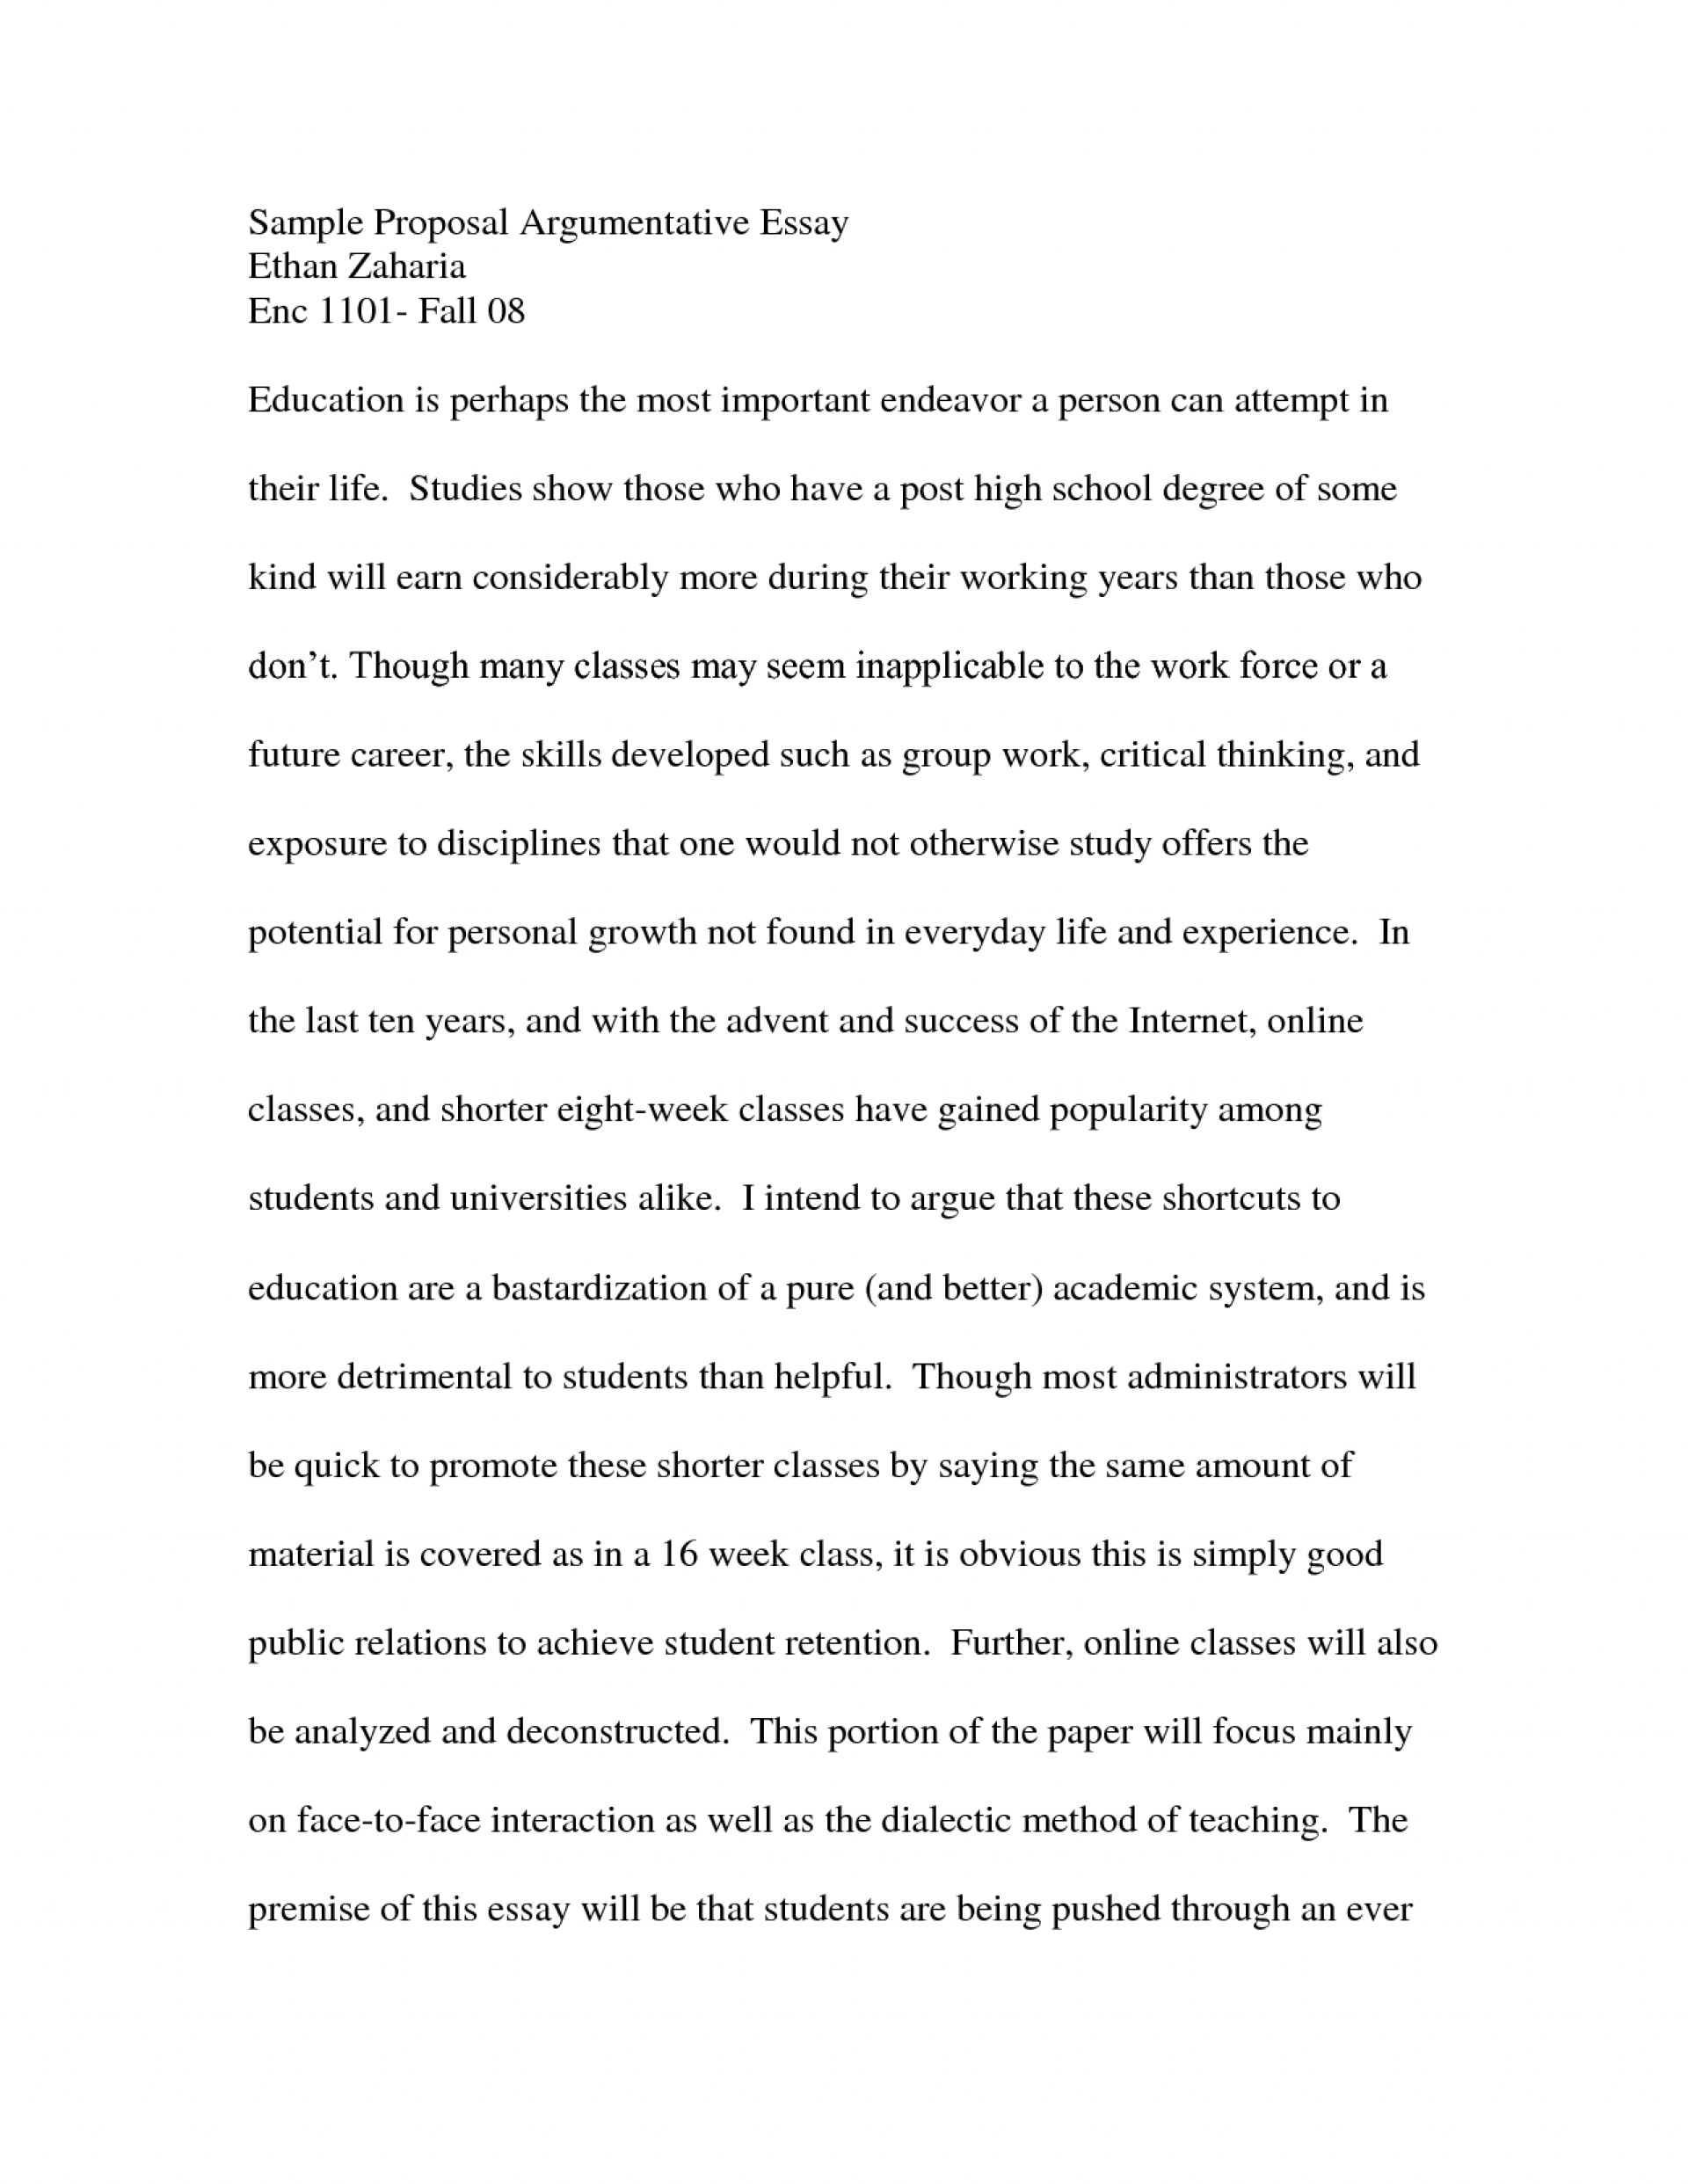 016 Essay Example 3d7hsocgst How To Write Claim For Astounding A An Of Value Fact And Support 1920